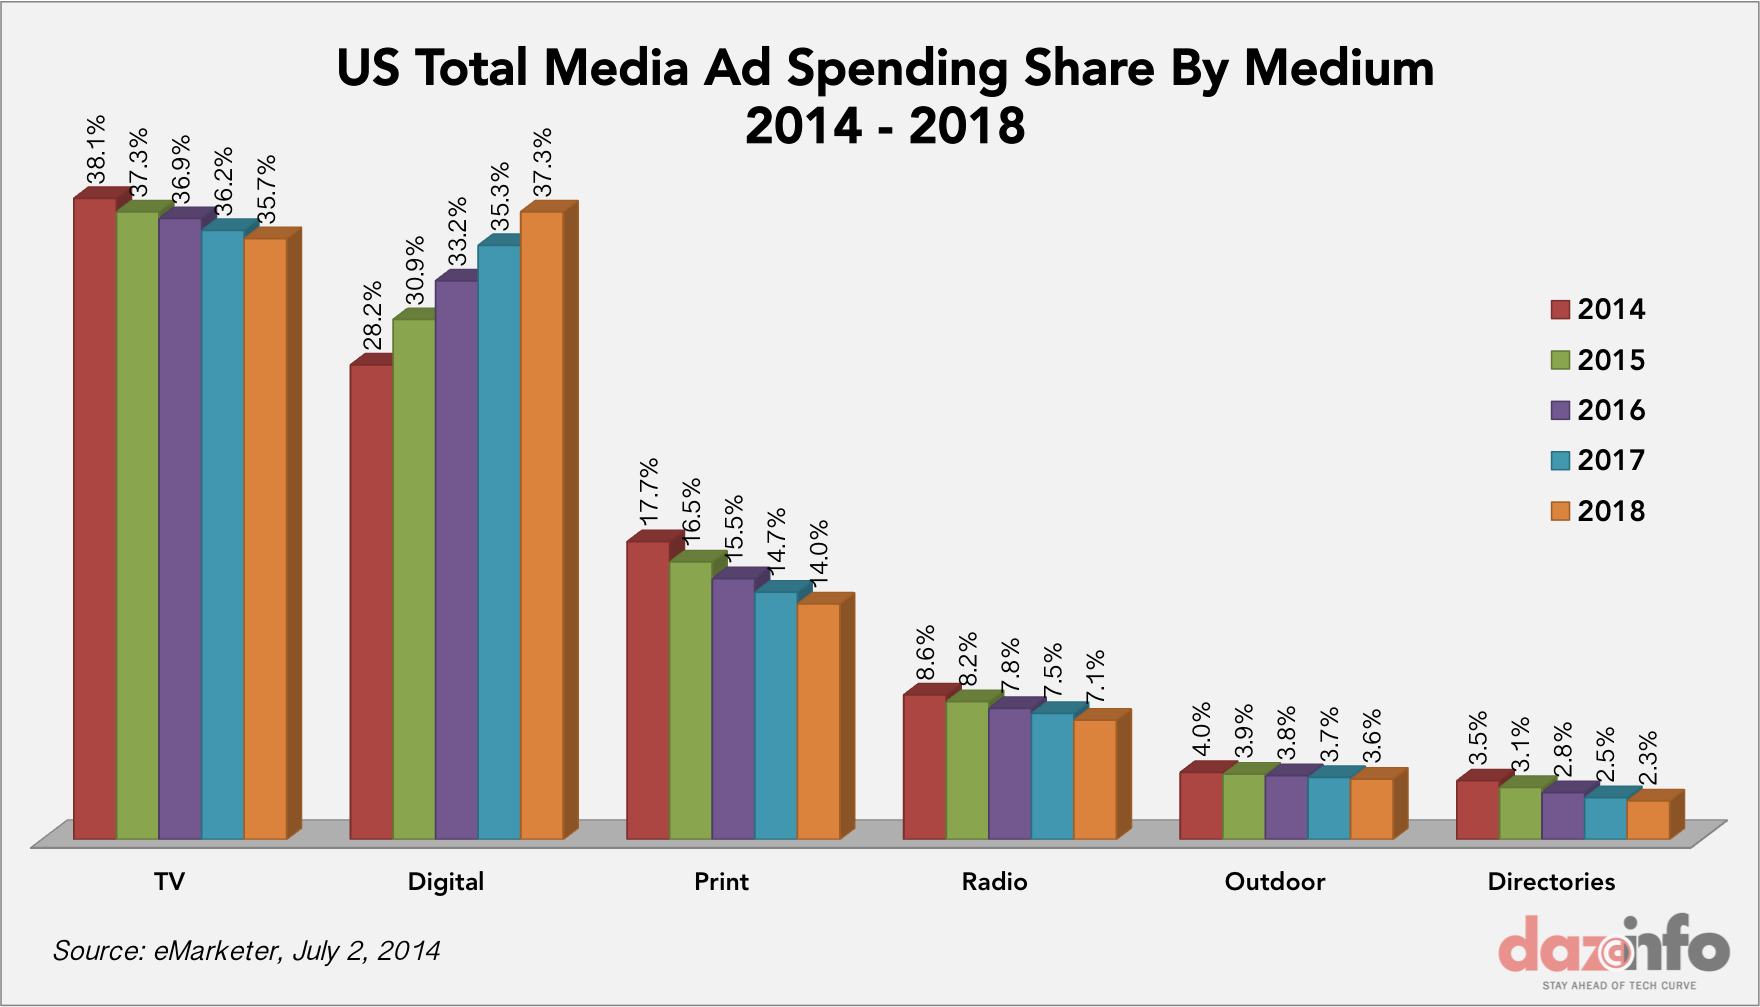 Ad spending in US 2014 - 2018